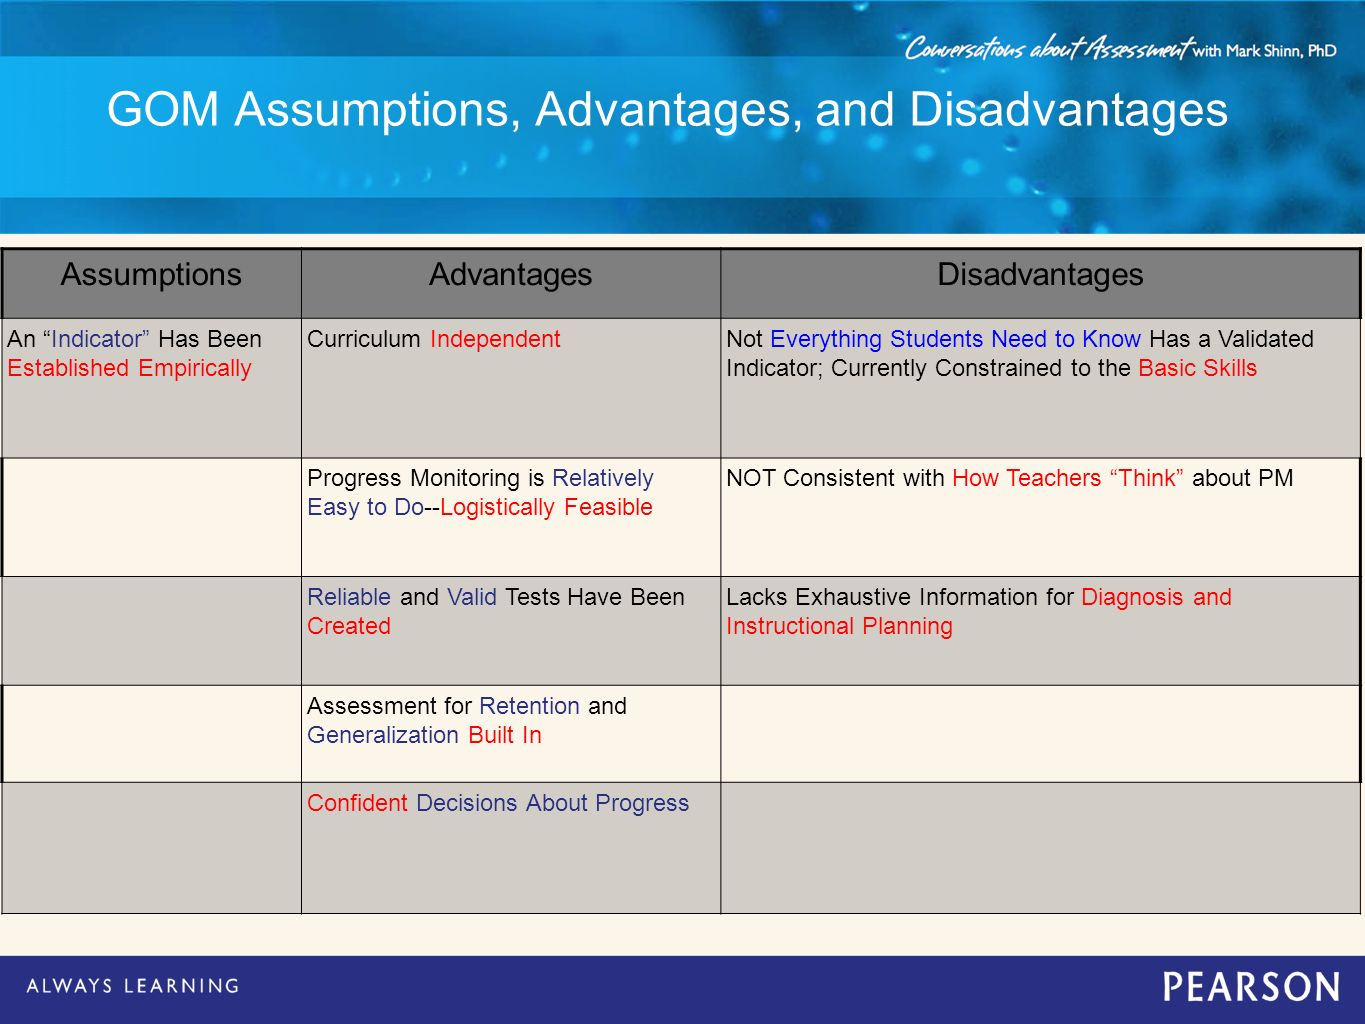 GOM Assumptions, Advantages, and Disadvantages